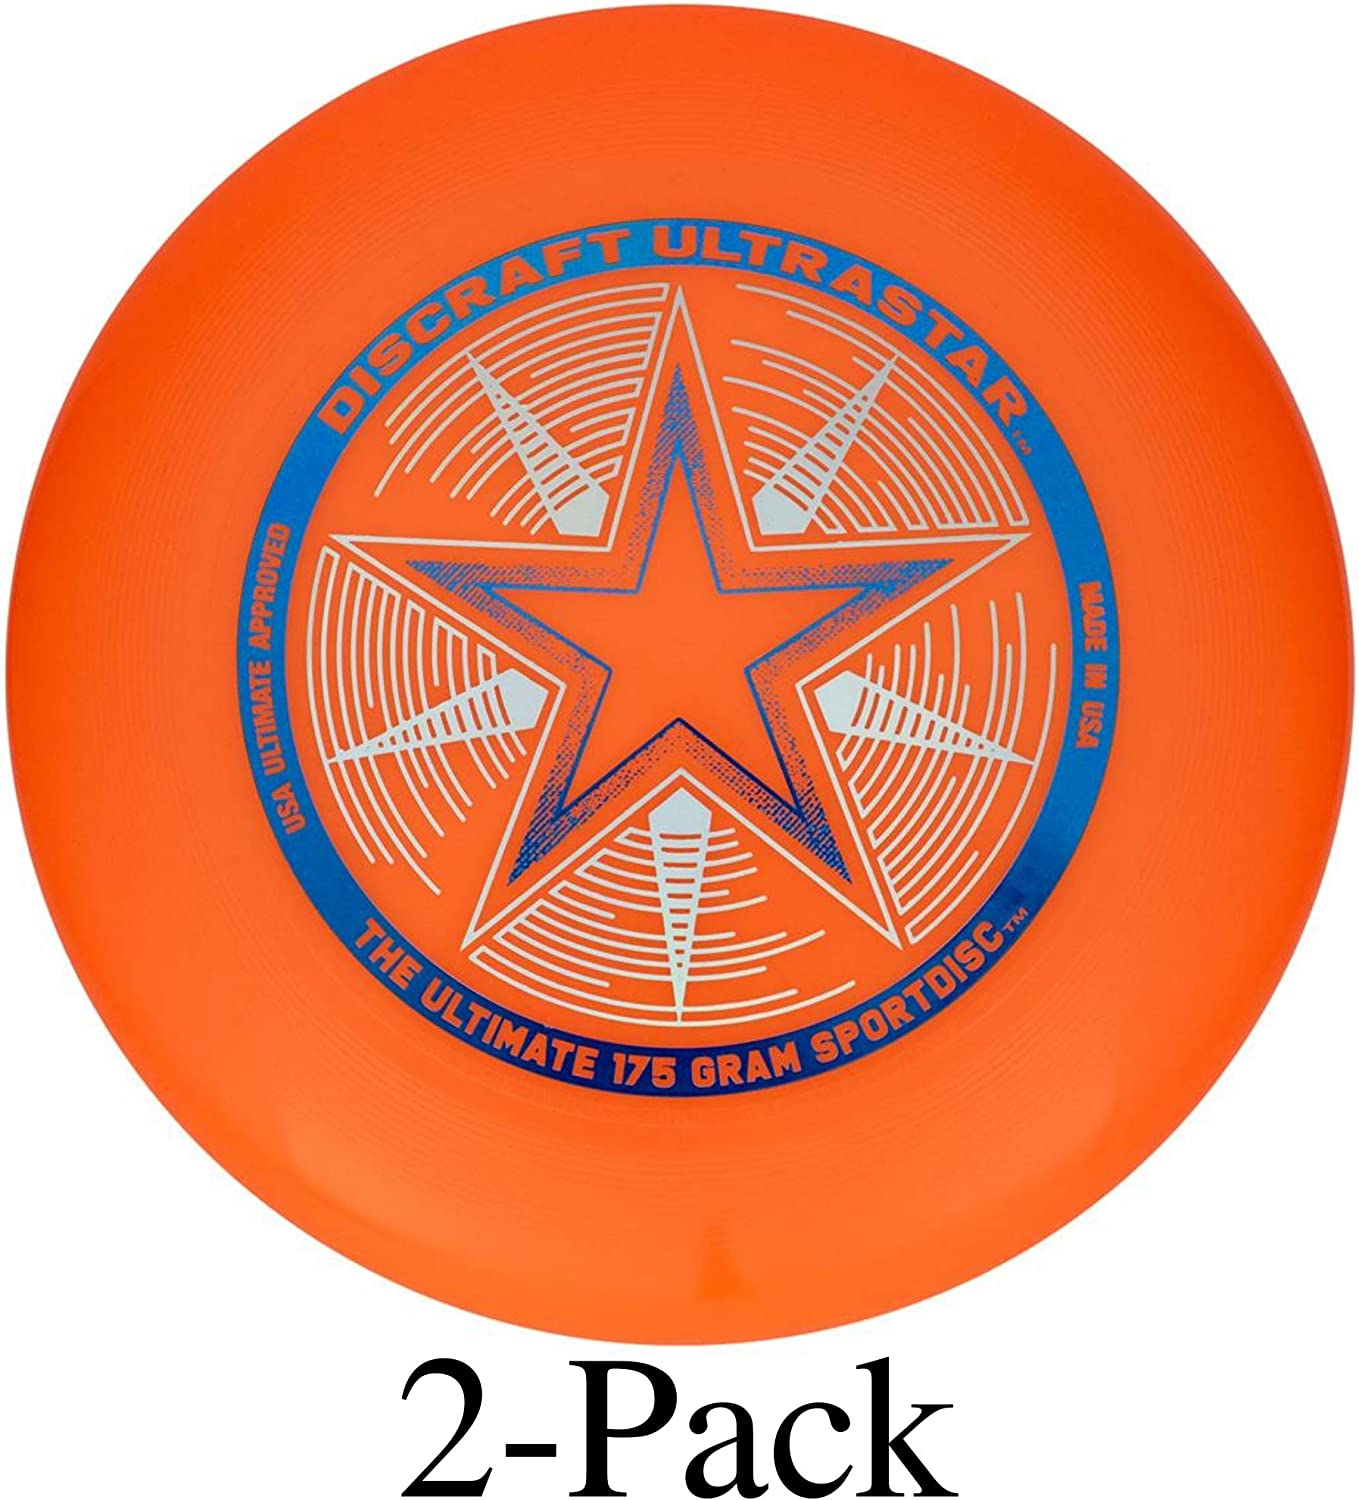 2-Pack Discraft Ultra-Star Ultimate Frisbee 175 Gram Championship Disc White